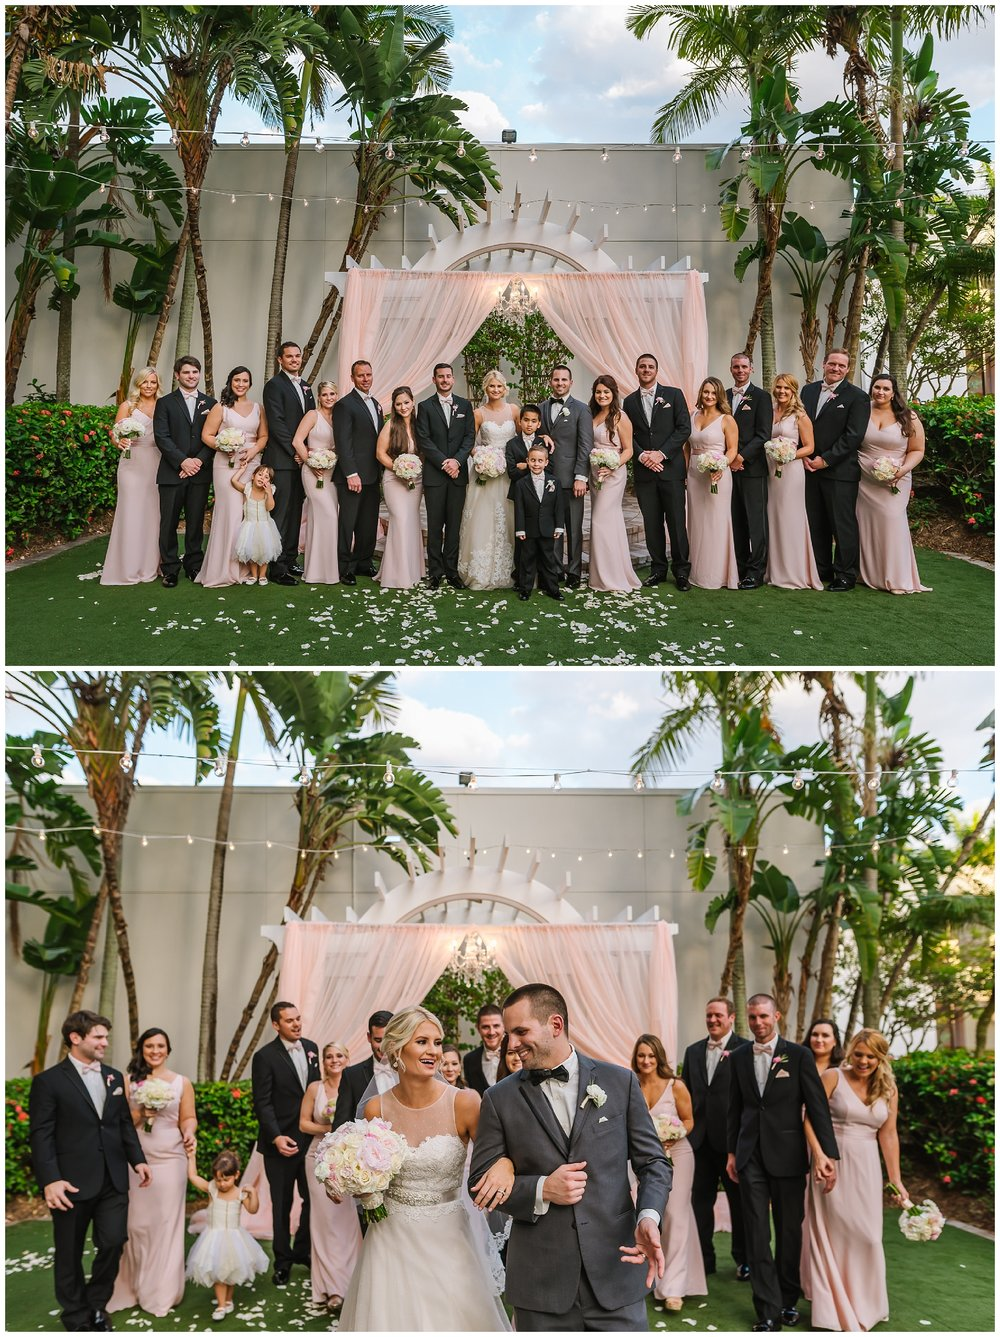 Sarasota-wedding-photographer-hyatt-regency-blush_0045.jpg